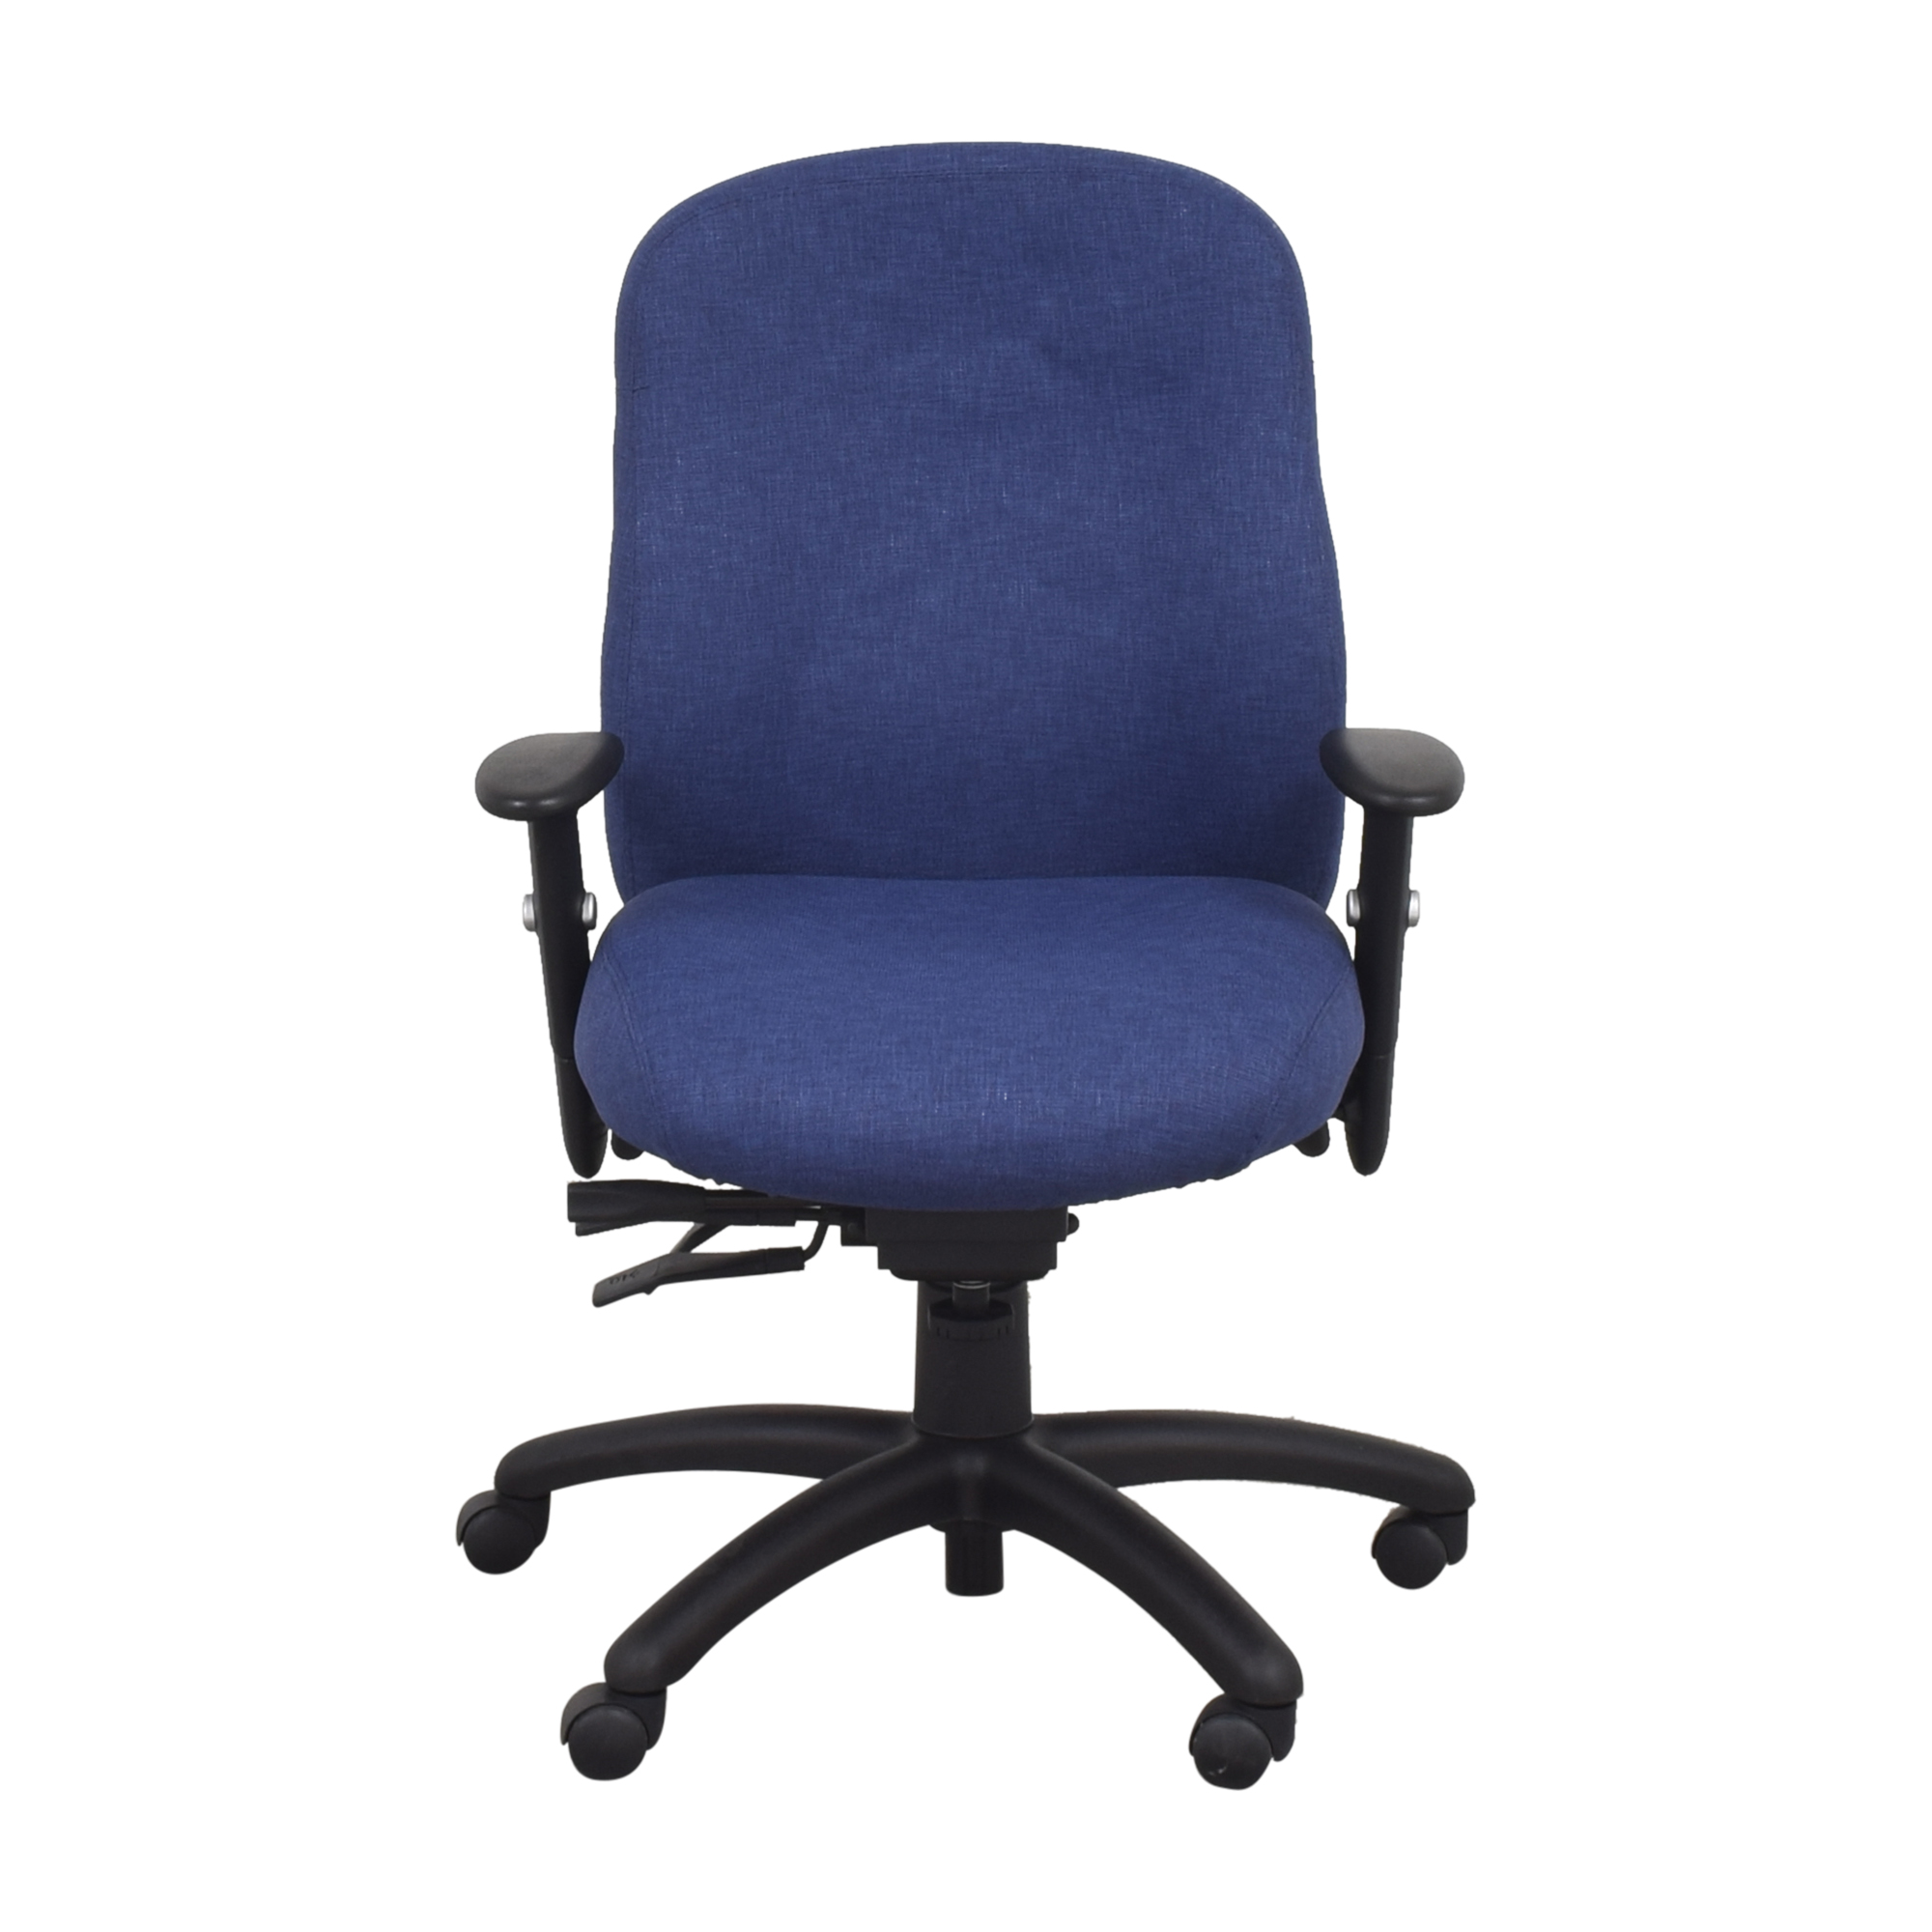 Offices to Go Offices to Go Multi-Function Desk Chair blue and black